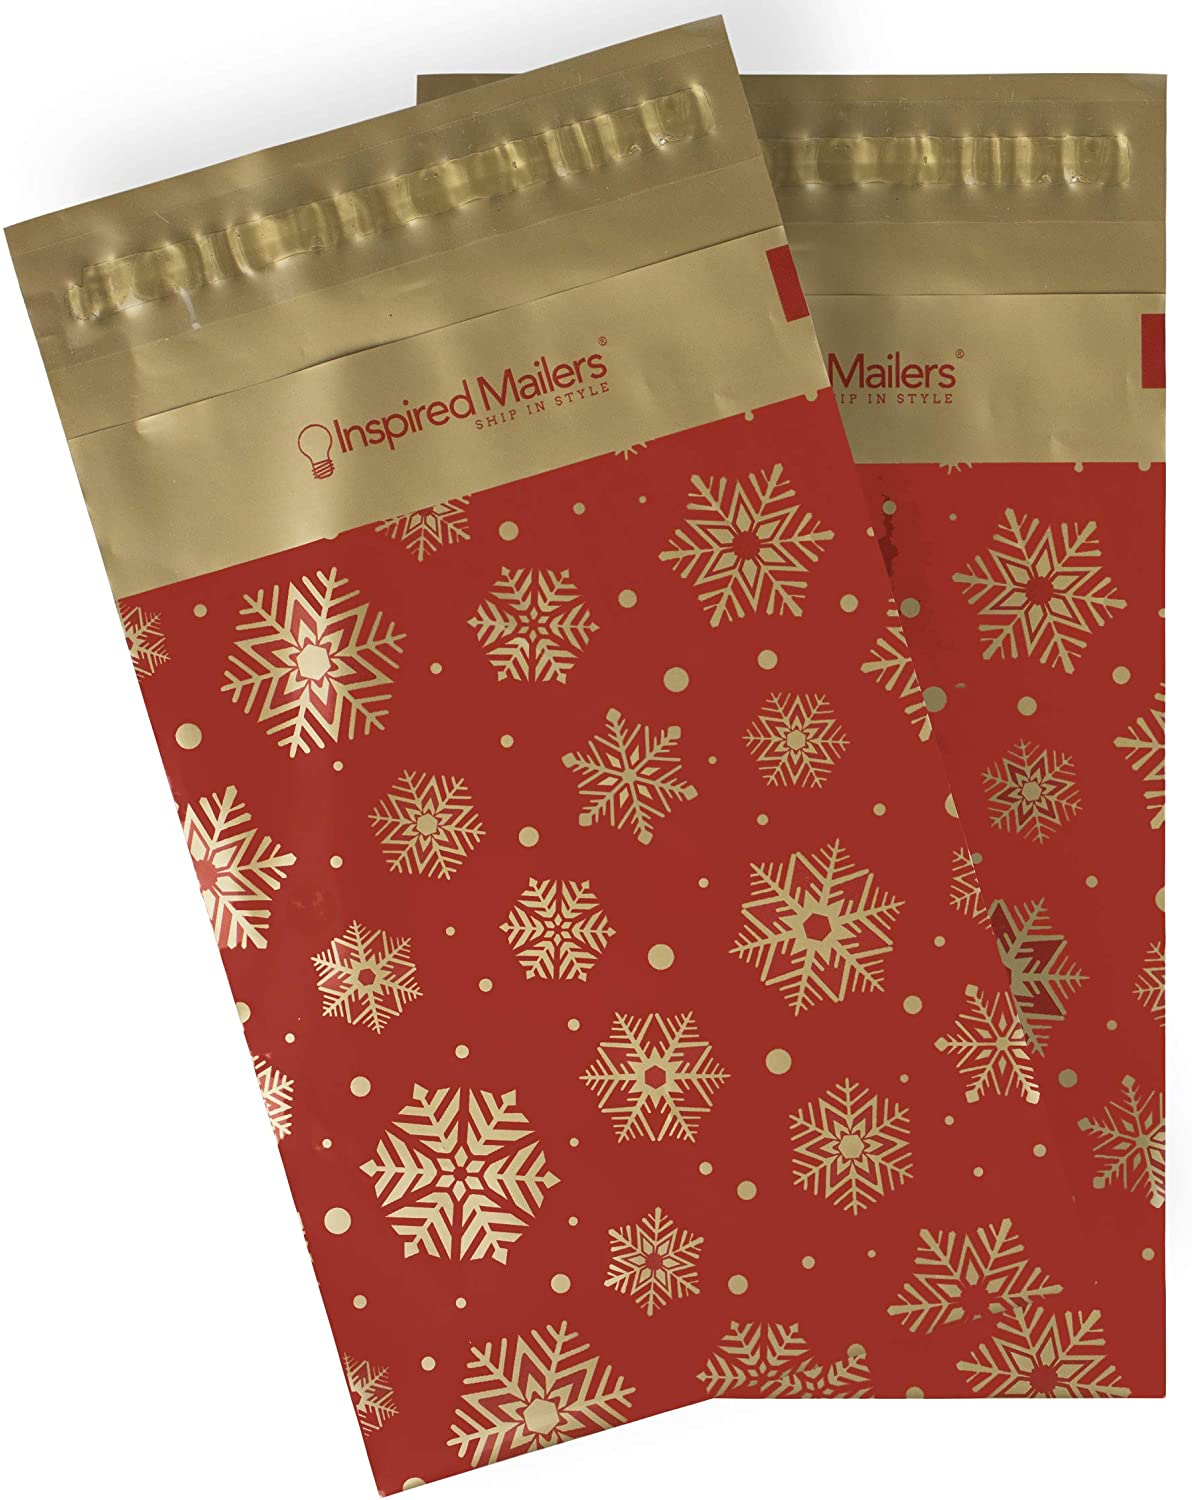 Inspired Mailers - Poly Mailers 6x9-100 Pack - Gold Snowflakes Deluxe (Red) - Holiday Shipping Envelopes 6x9 - Package Bags - Poly Bags for Shipping - Envelope 6x9